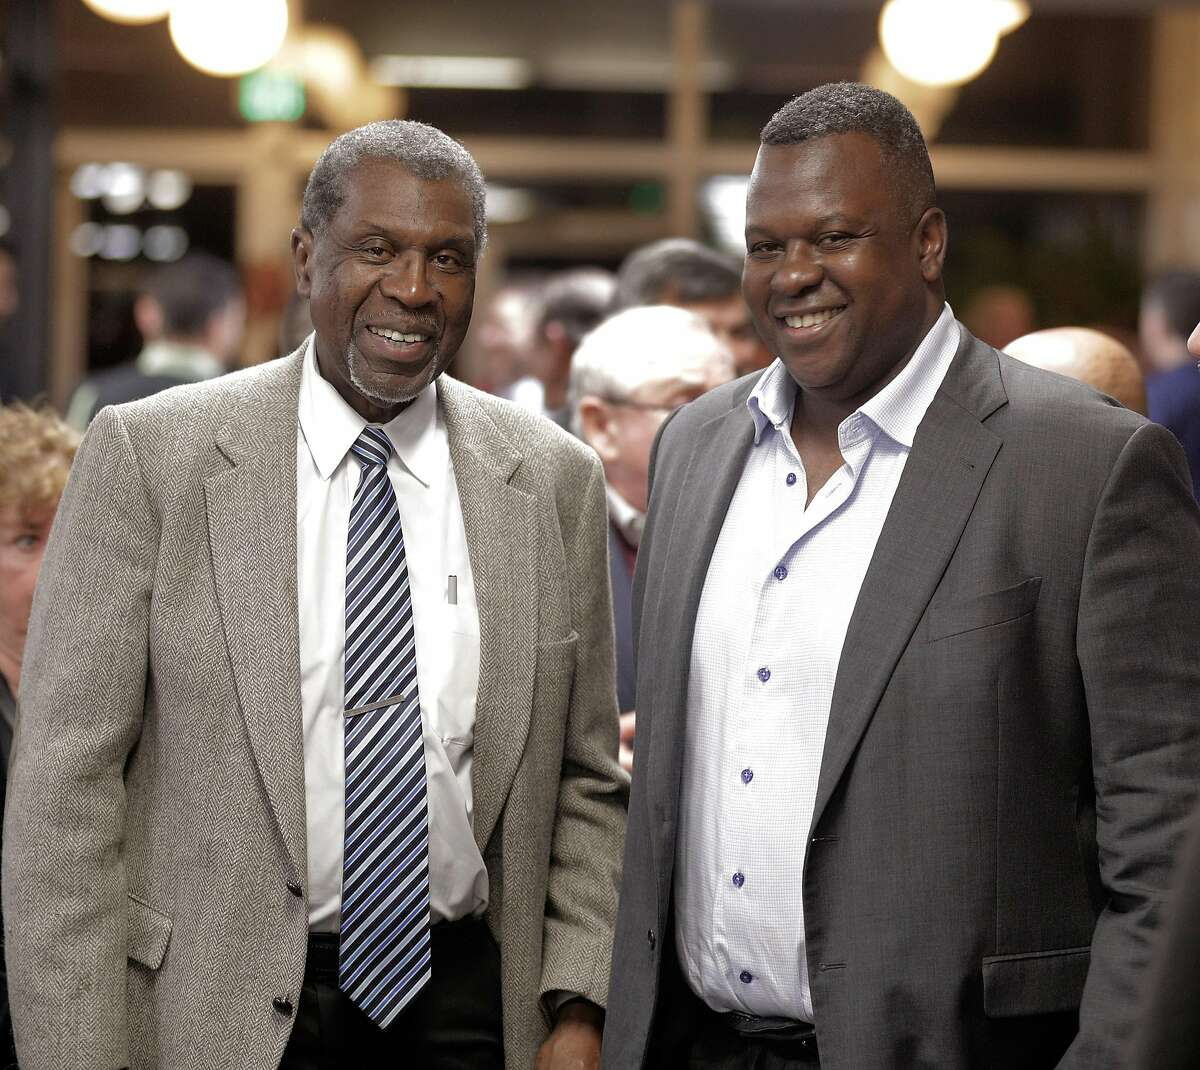 A's assistant GM Billy Owens with his father, Levi Owens, left, at the annual Santa Clara County Hot Stove dinner, in San Jose, Calif., on Tuesday, January 15, 2019. Owens is a rising star among baseball execs and he's one of the best minority GM candidates in the game.